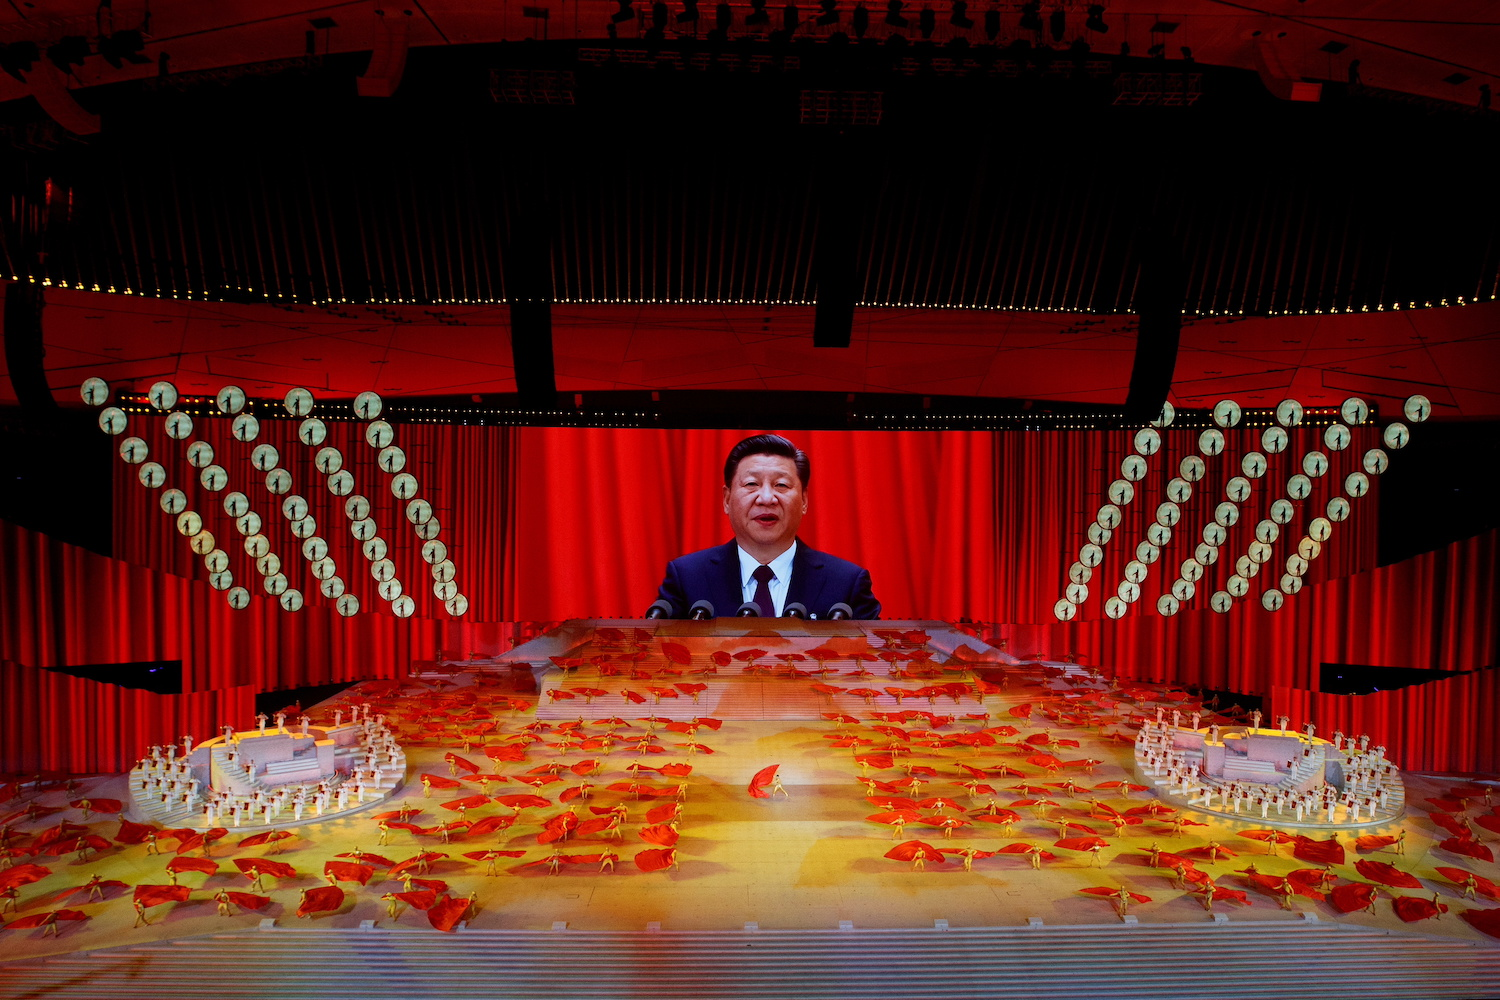 China Evergrande crisis signal trouble for China President Xi Jinping